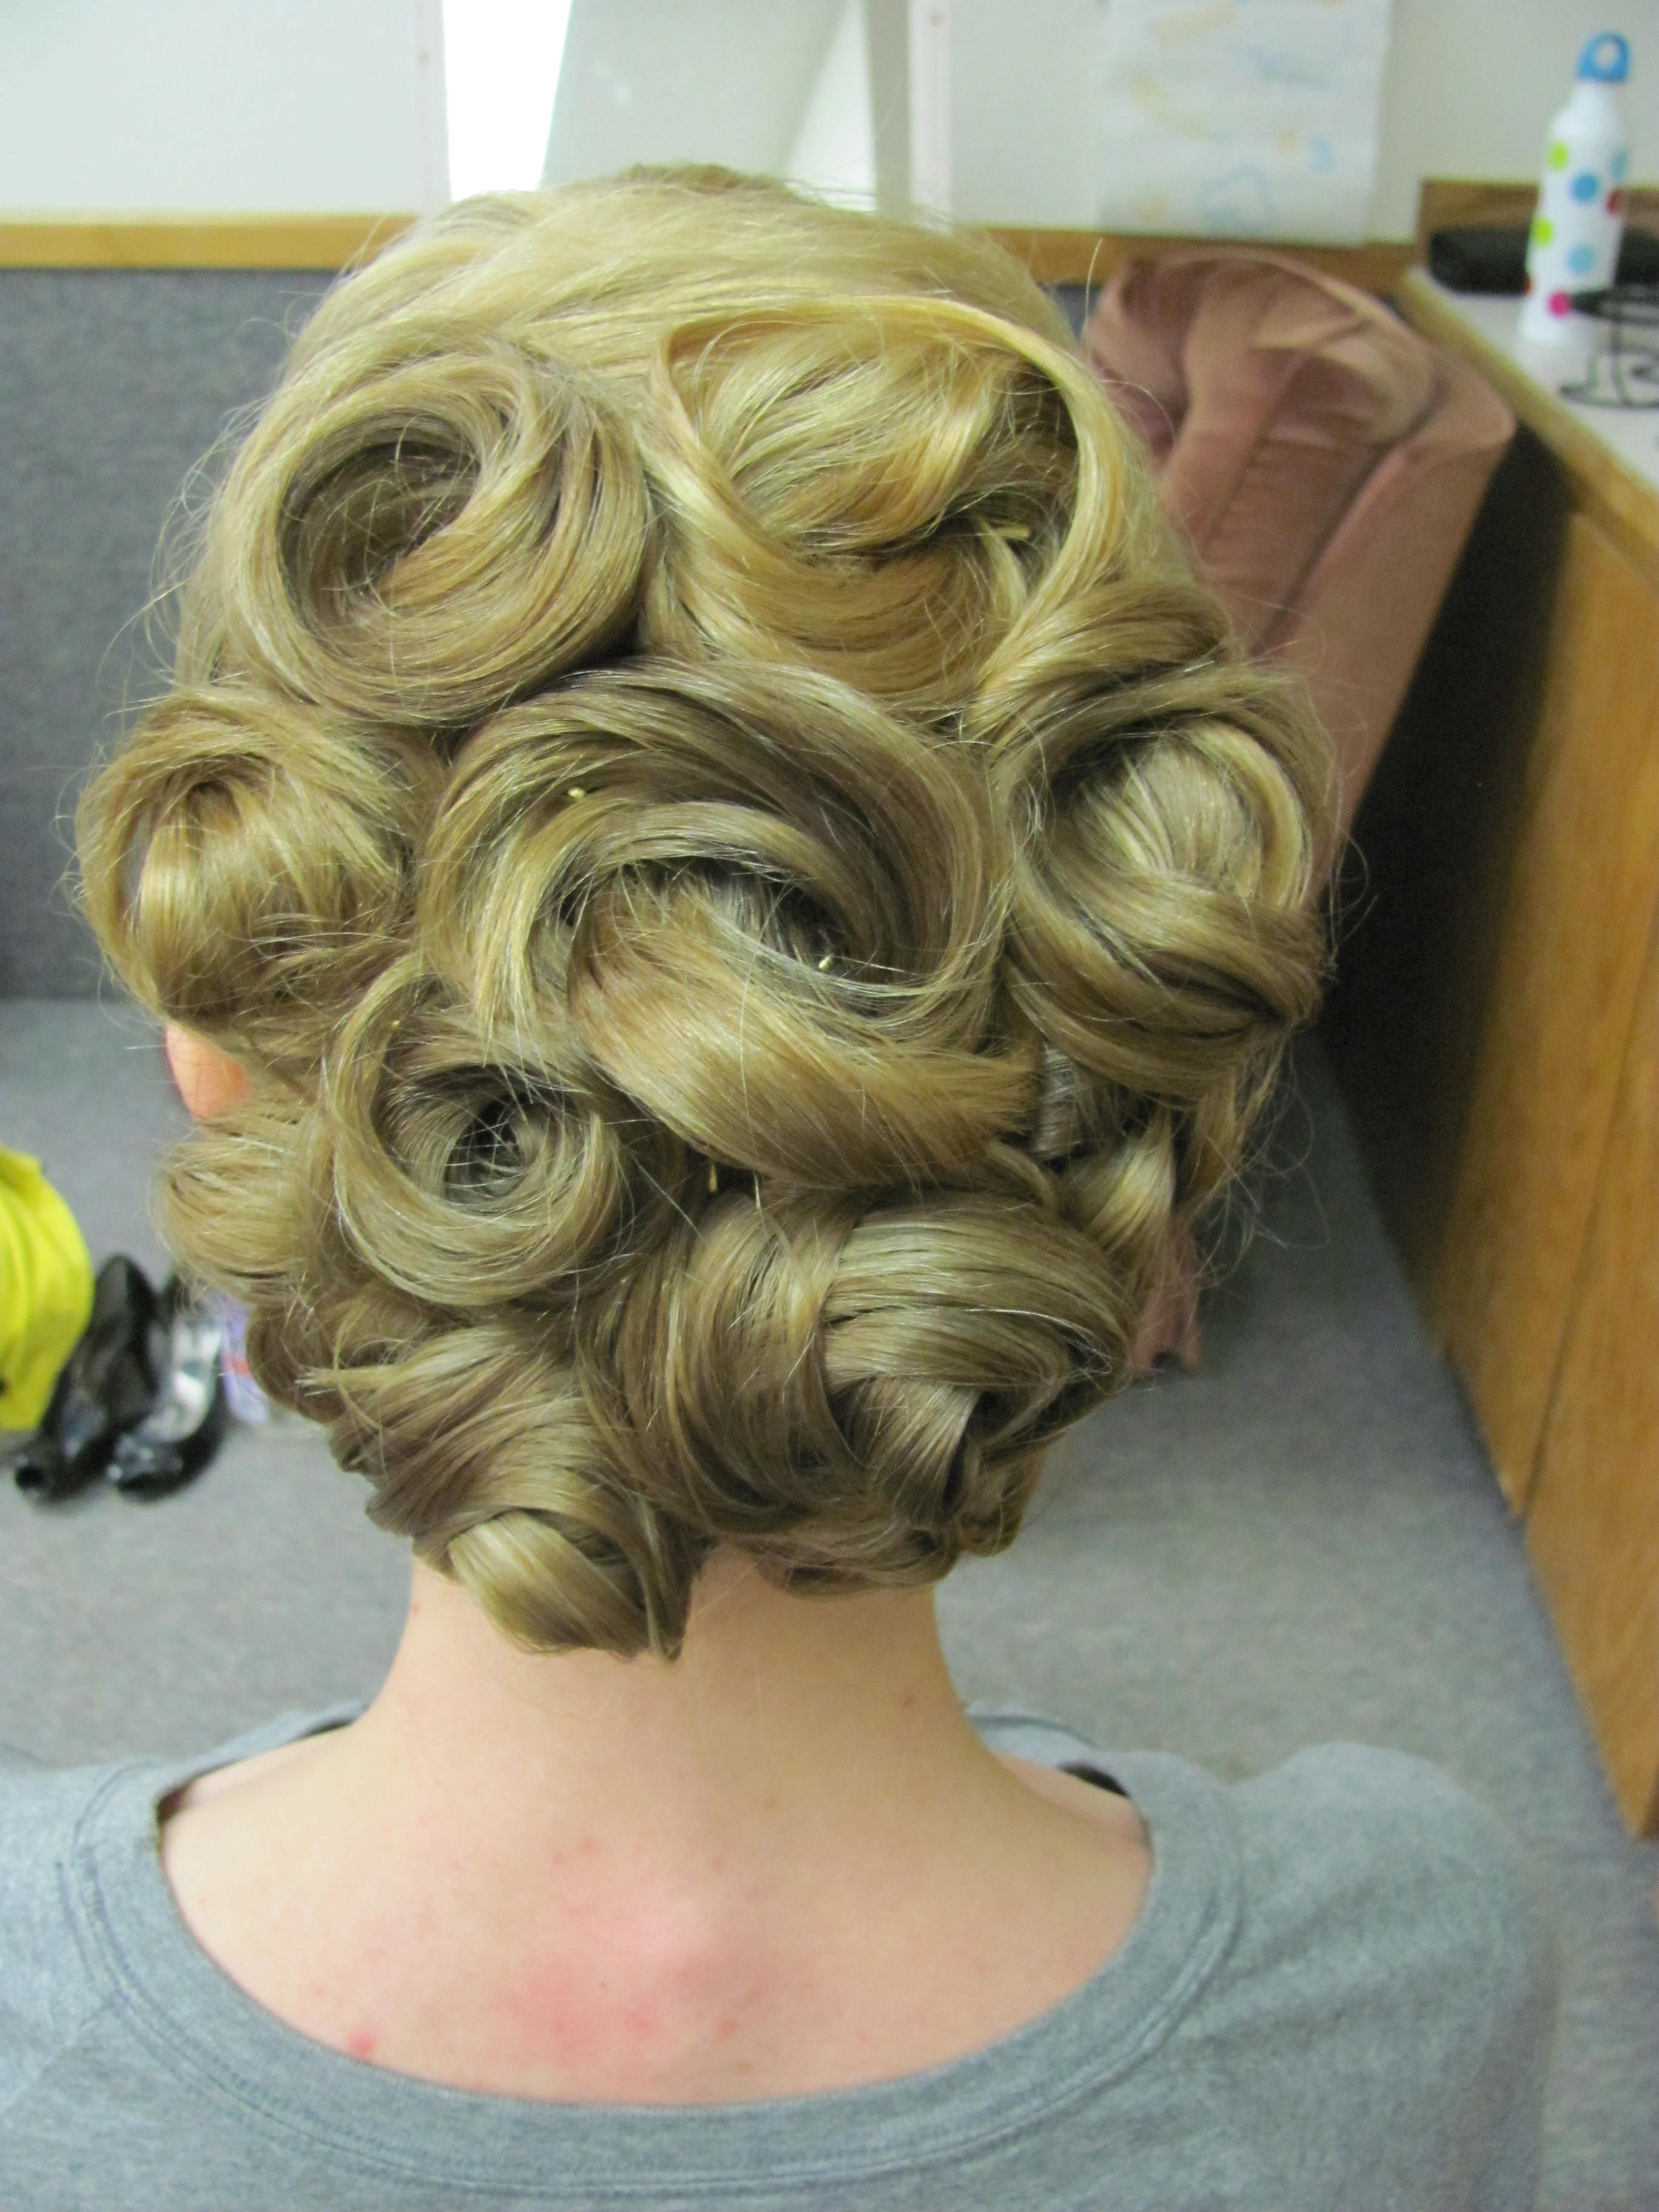 pin curl updo   Pin curl updo, Curled updo, Hair styles